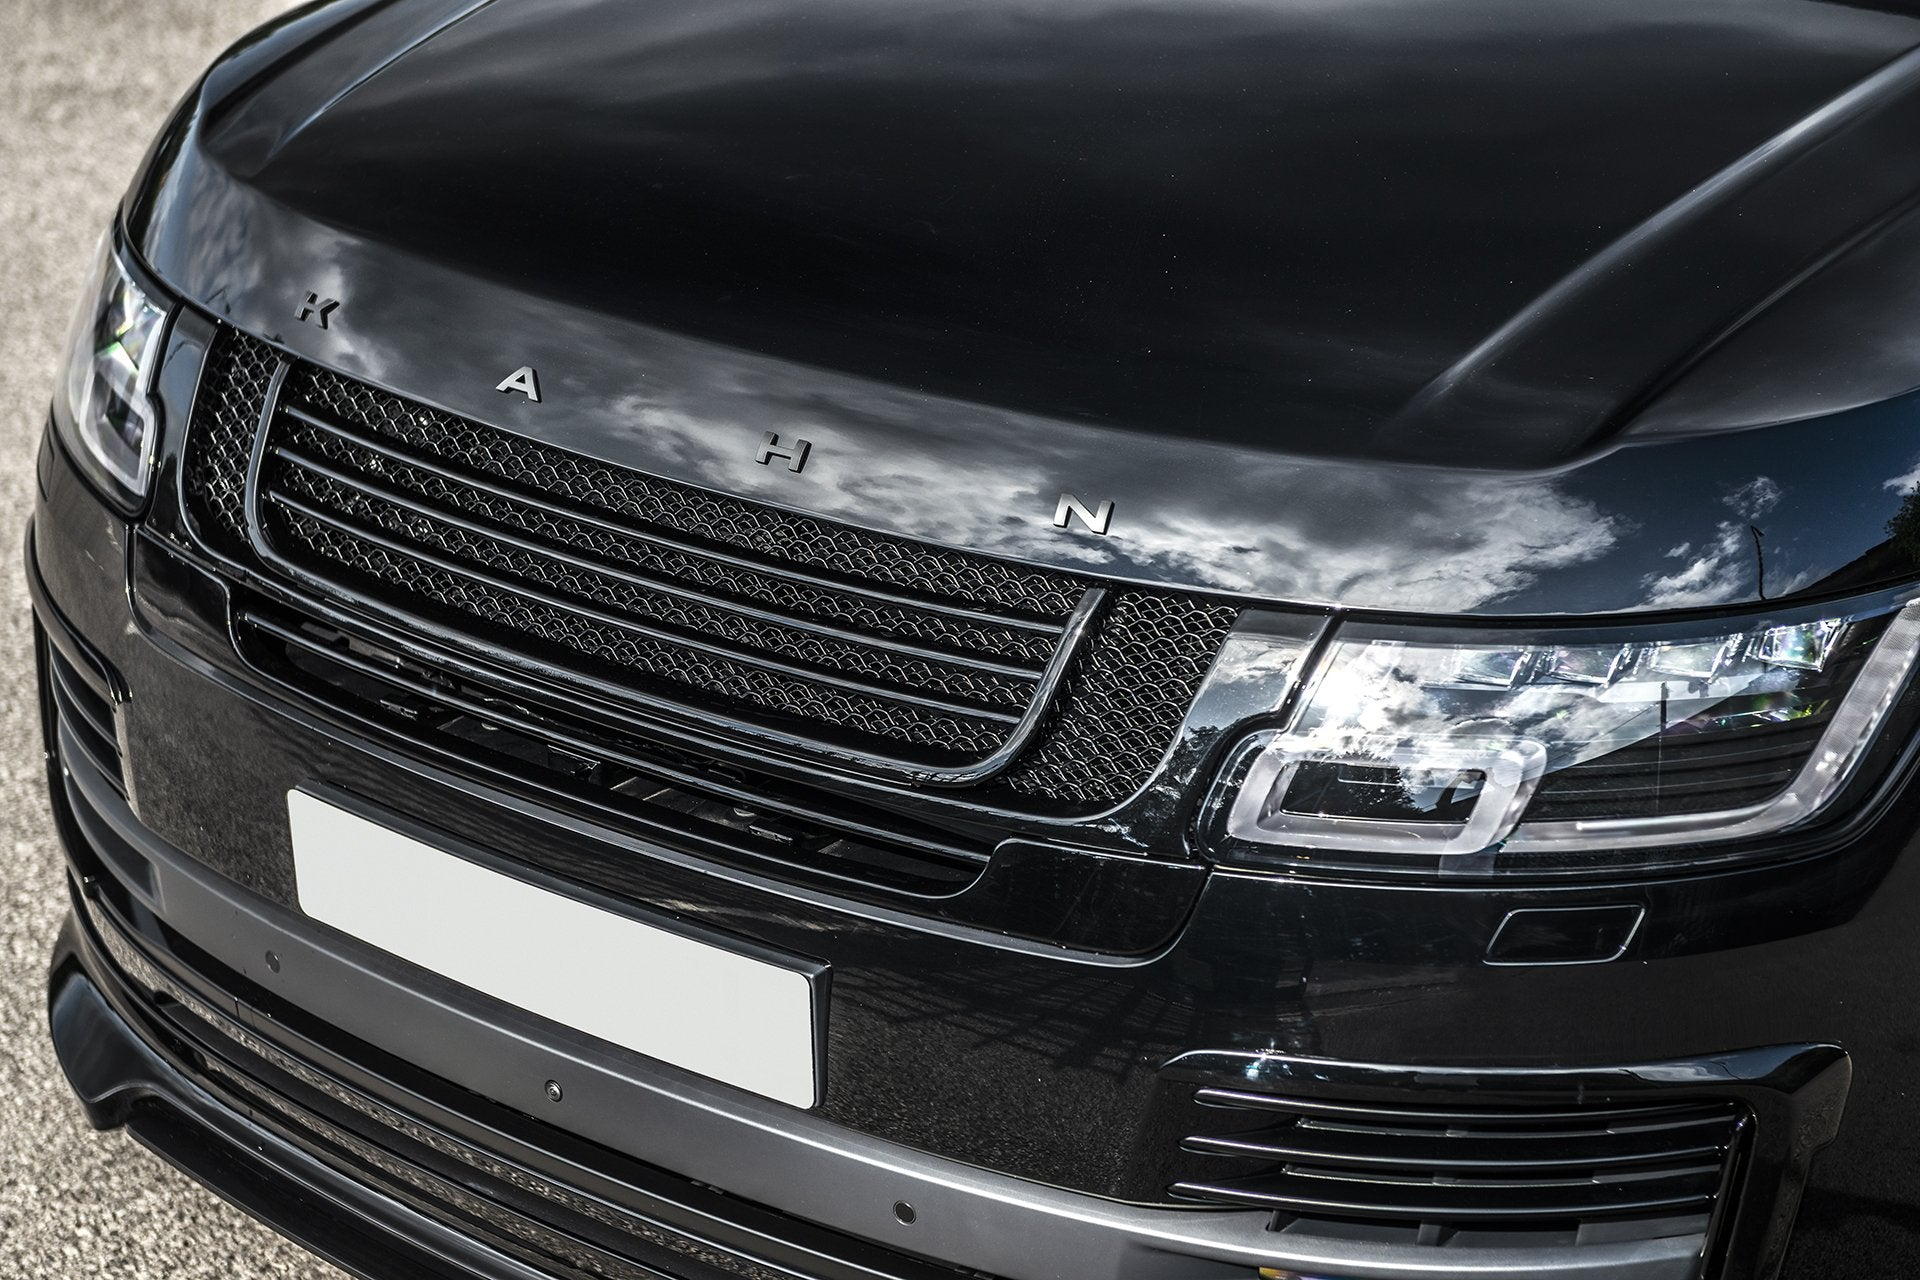 Range Rover (2018-Present) Exposed Carbon Front Grille